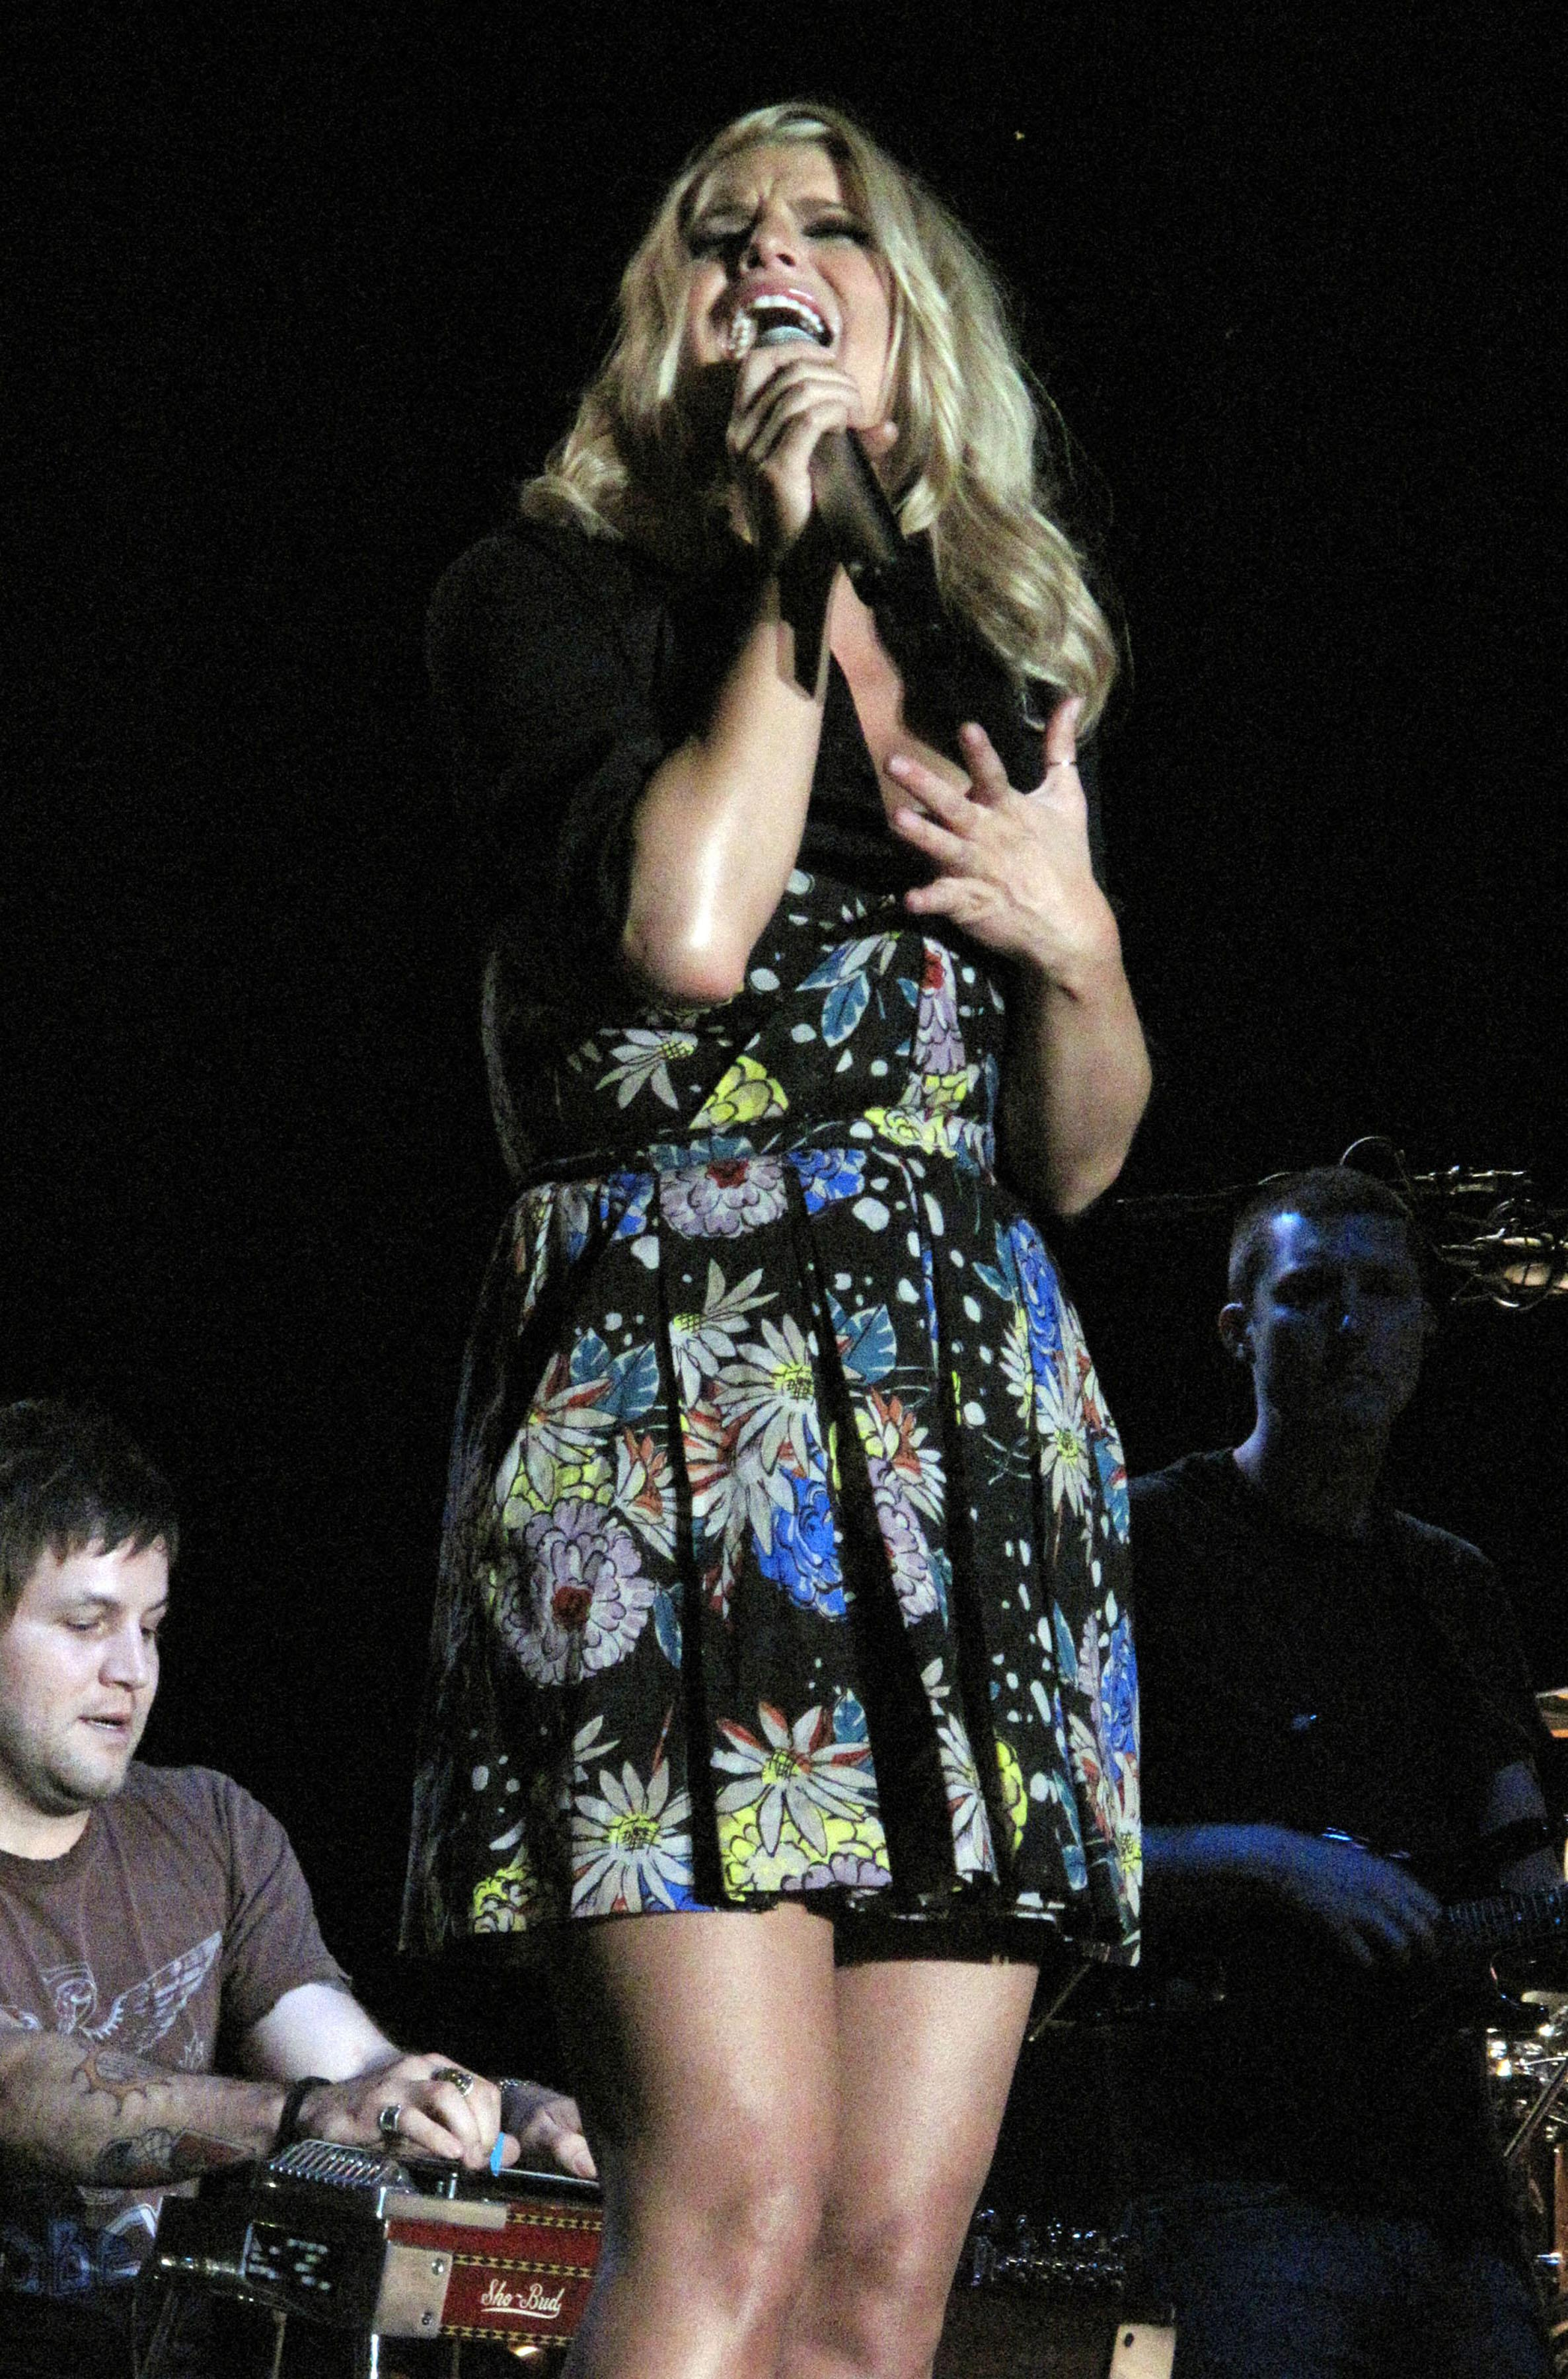 71638_Jessica_Simpson_performs_live_at_the_Dixon_May_Fair_and_Carnival_3136_122_338lo.jpg